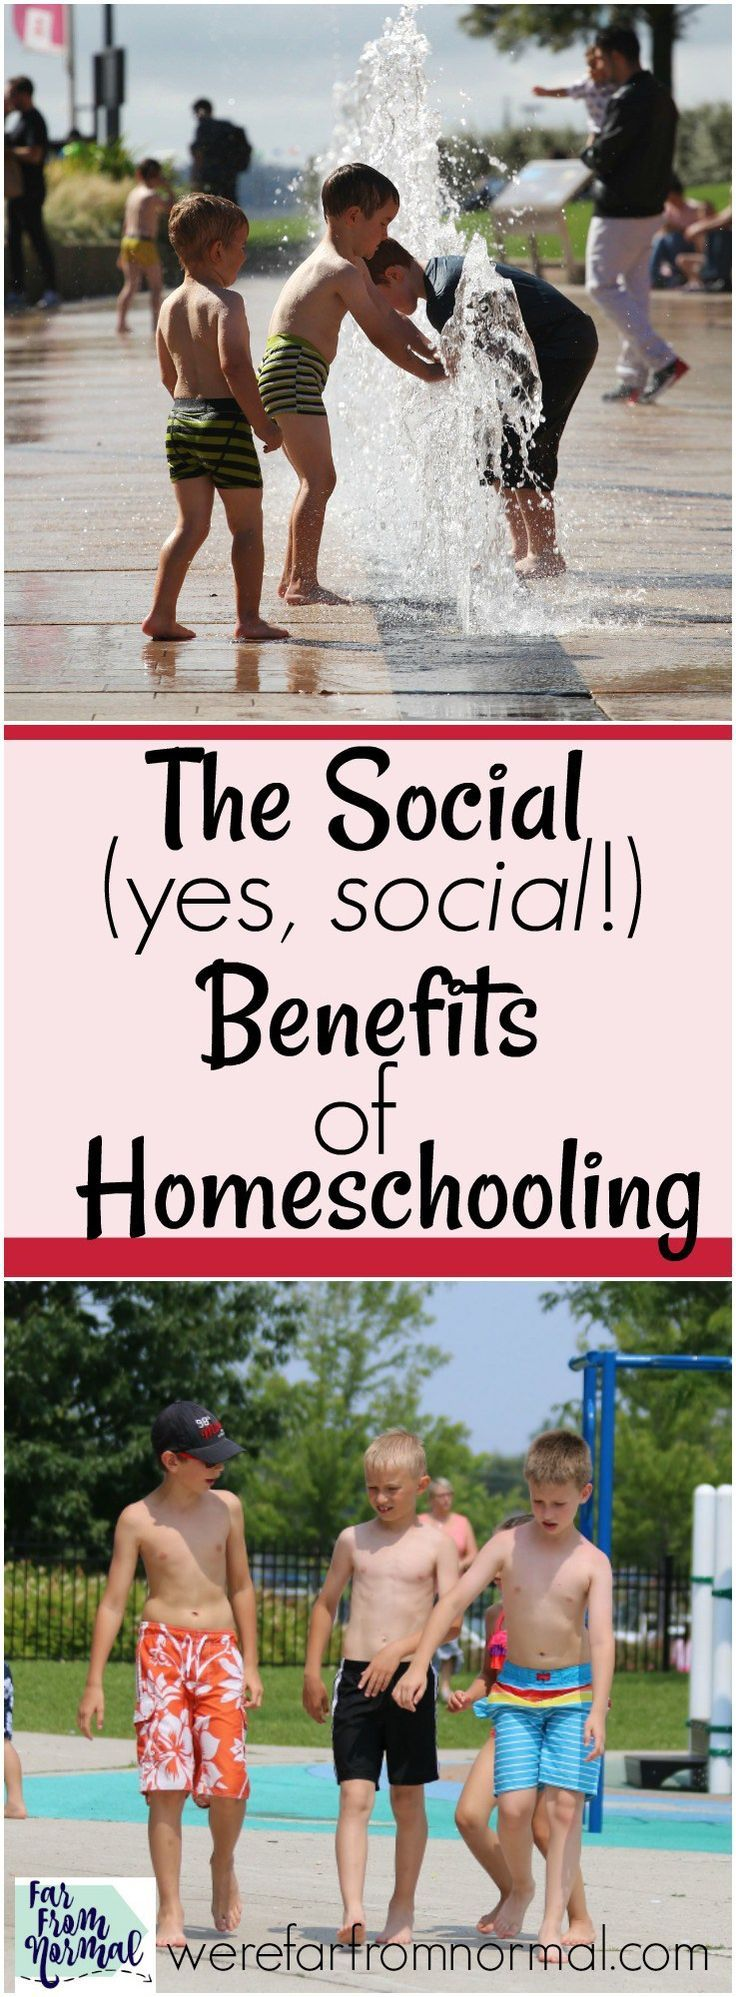 """What about socialization???"" It's the most common question asked of homeschoolers! What people don't understand is that homeschooling has amazing social benefits that help kids build friendships & have fun!"